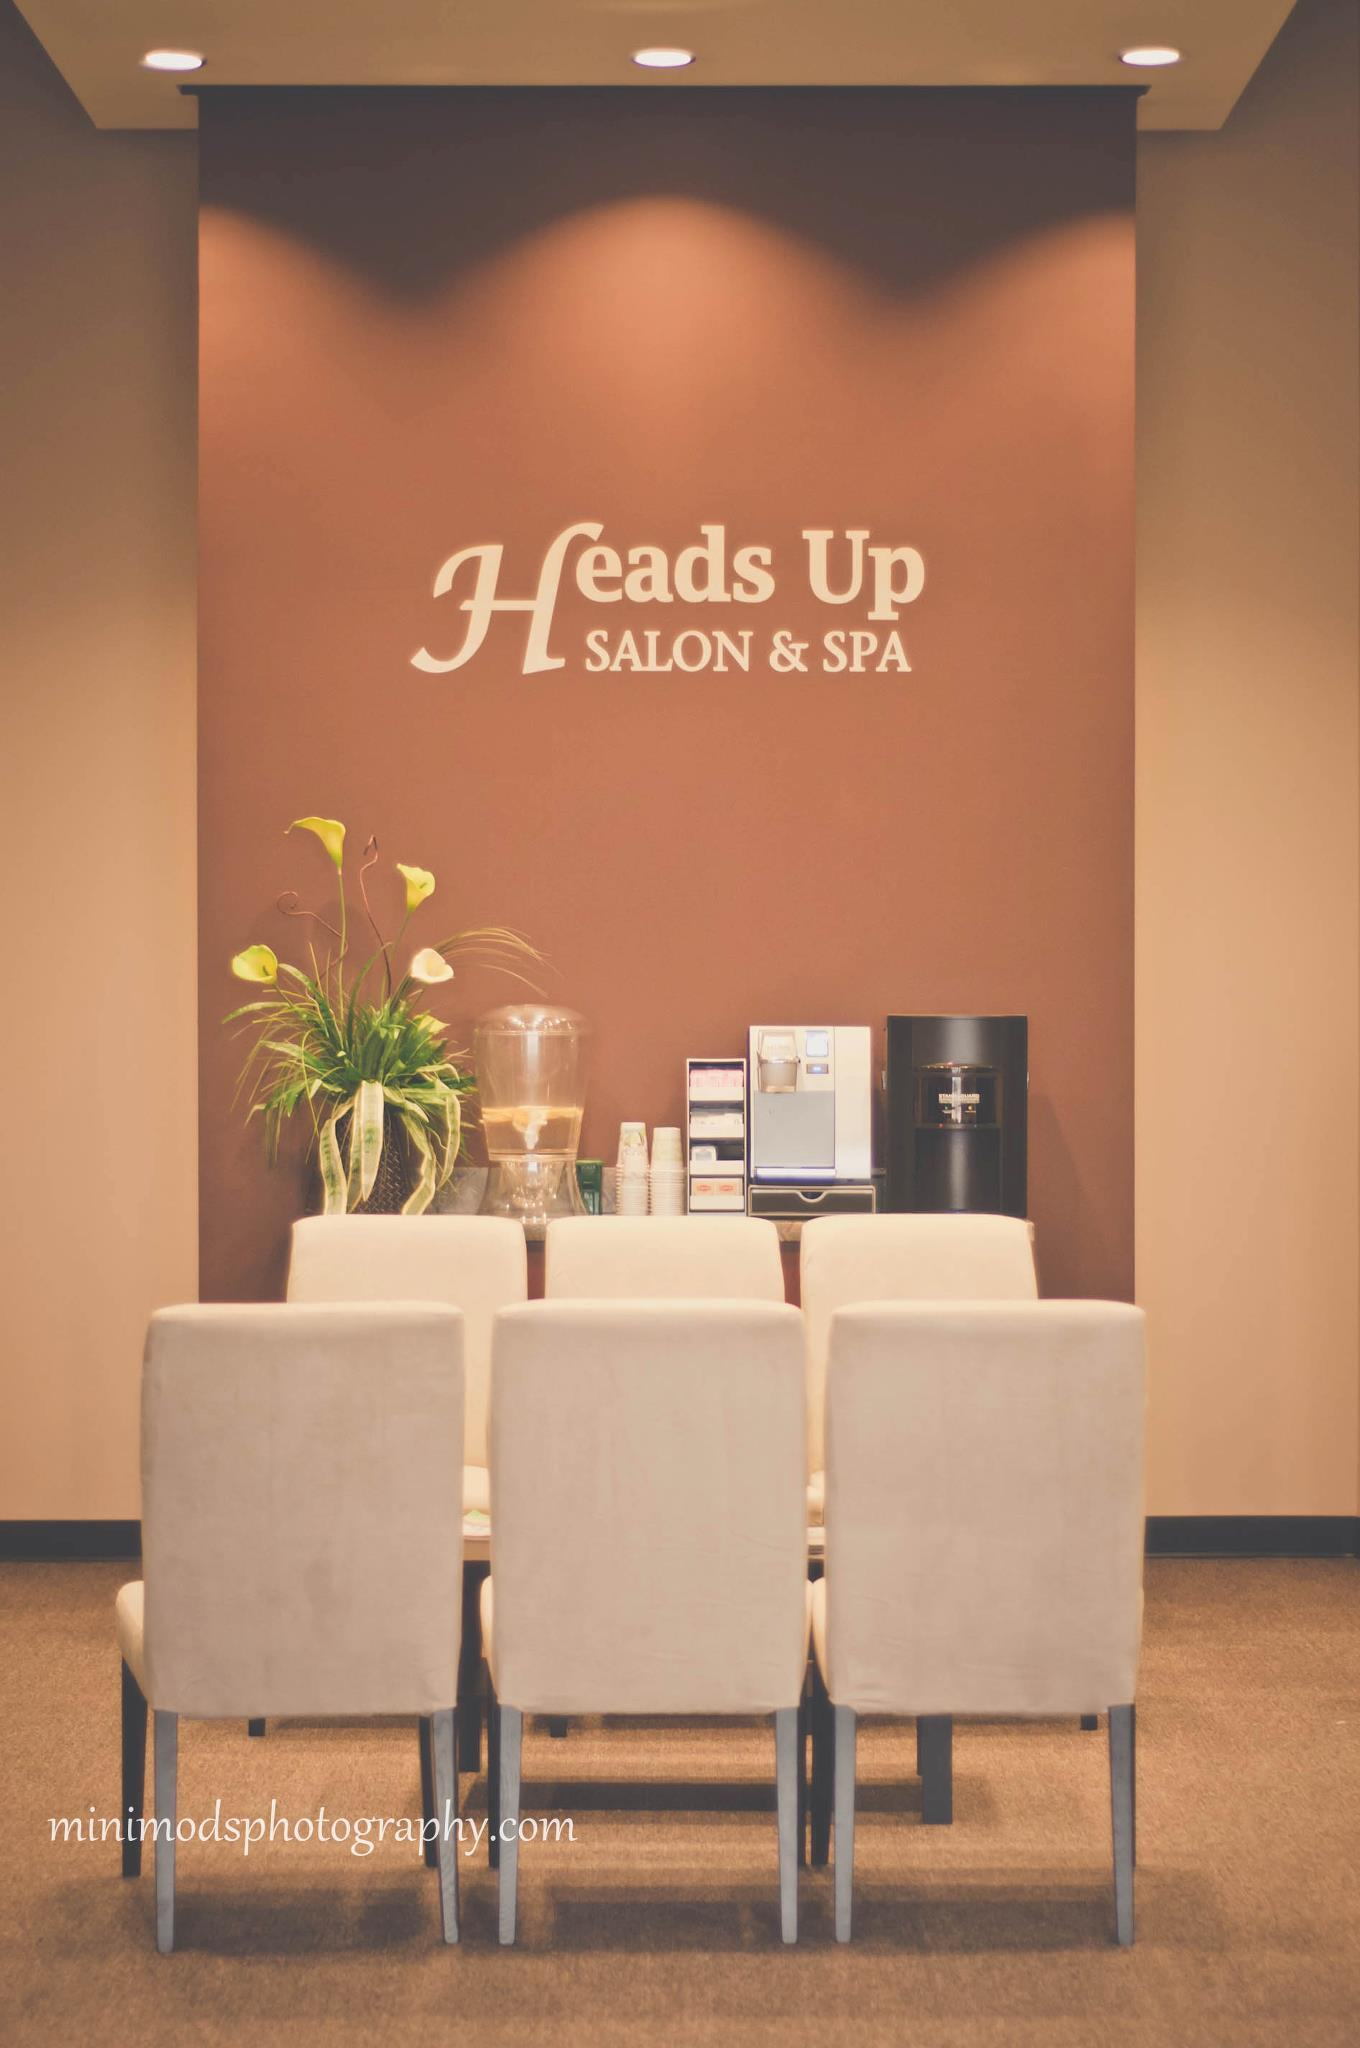 Heads Up Salon and Spa